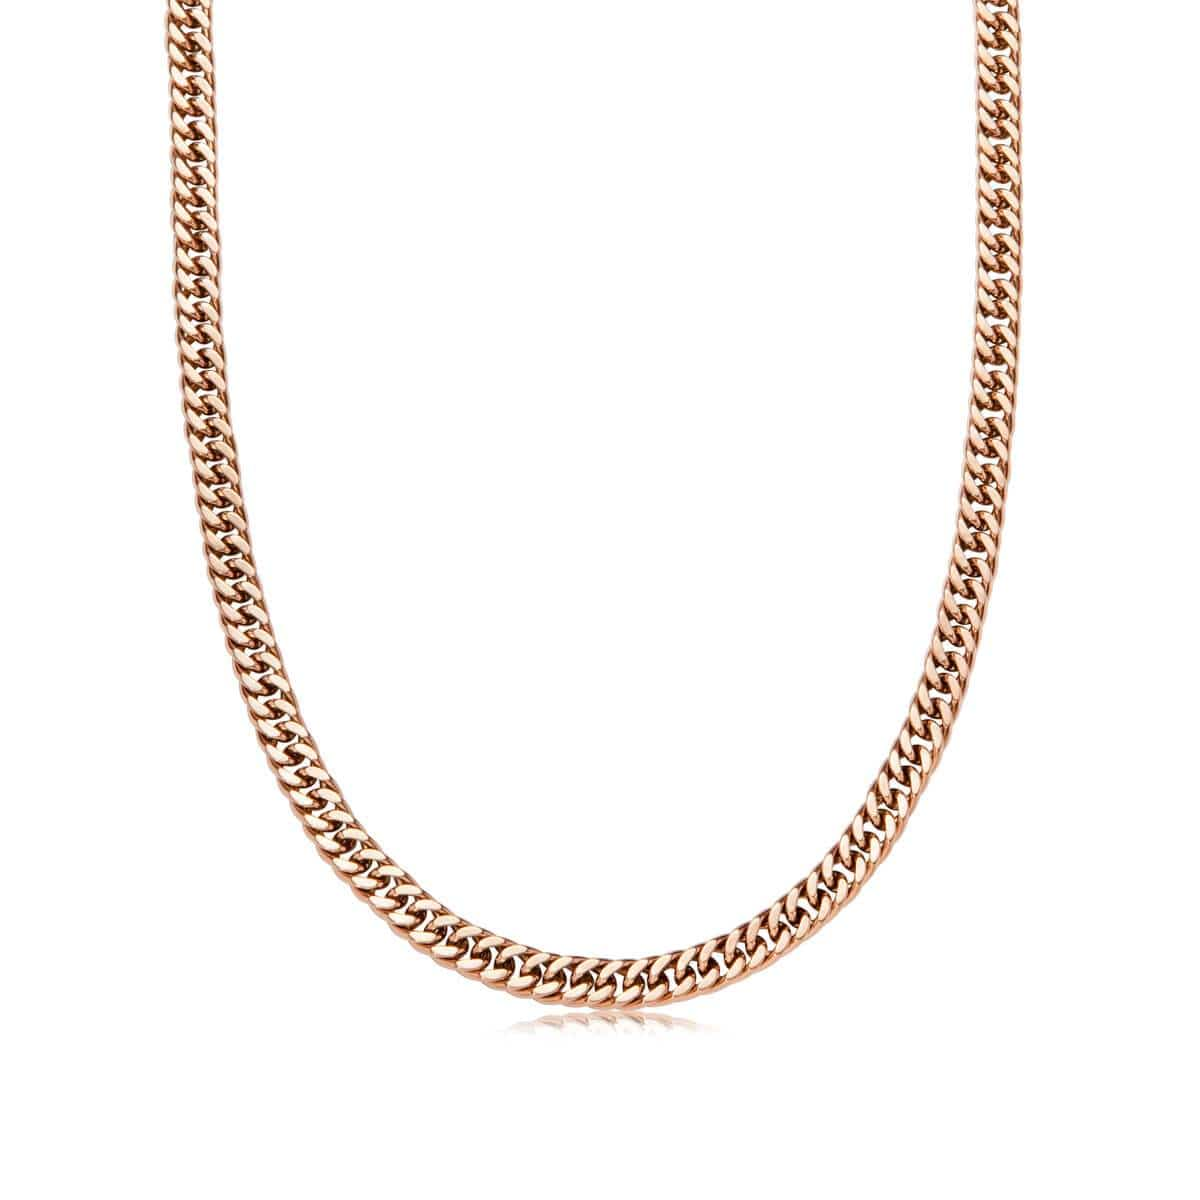 Selected Curb Chain Necklace (Rose Gold)